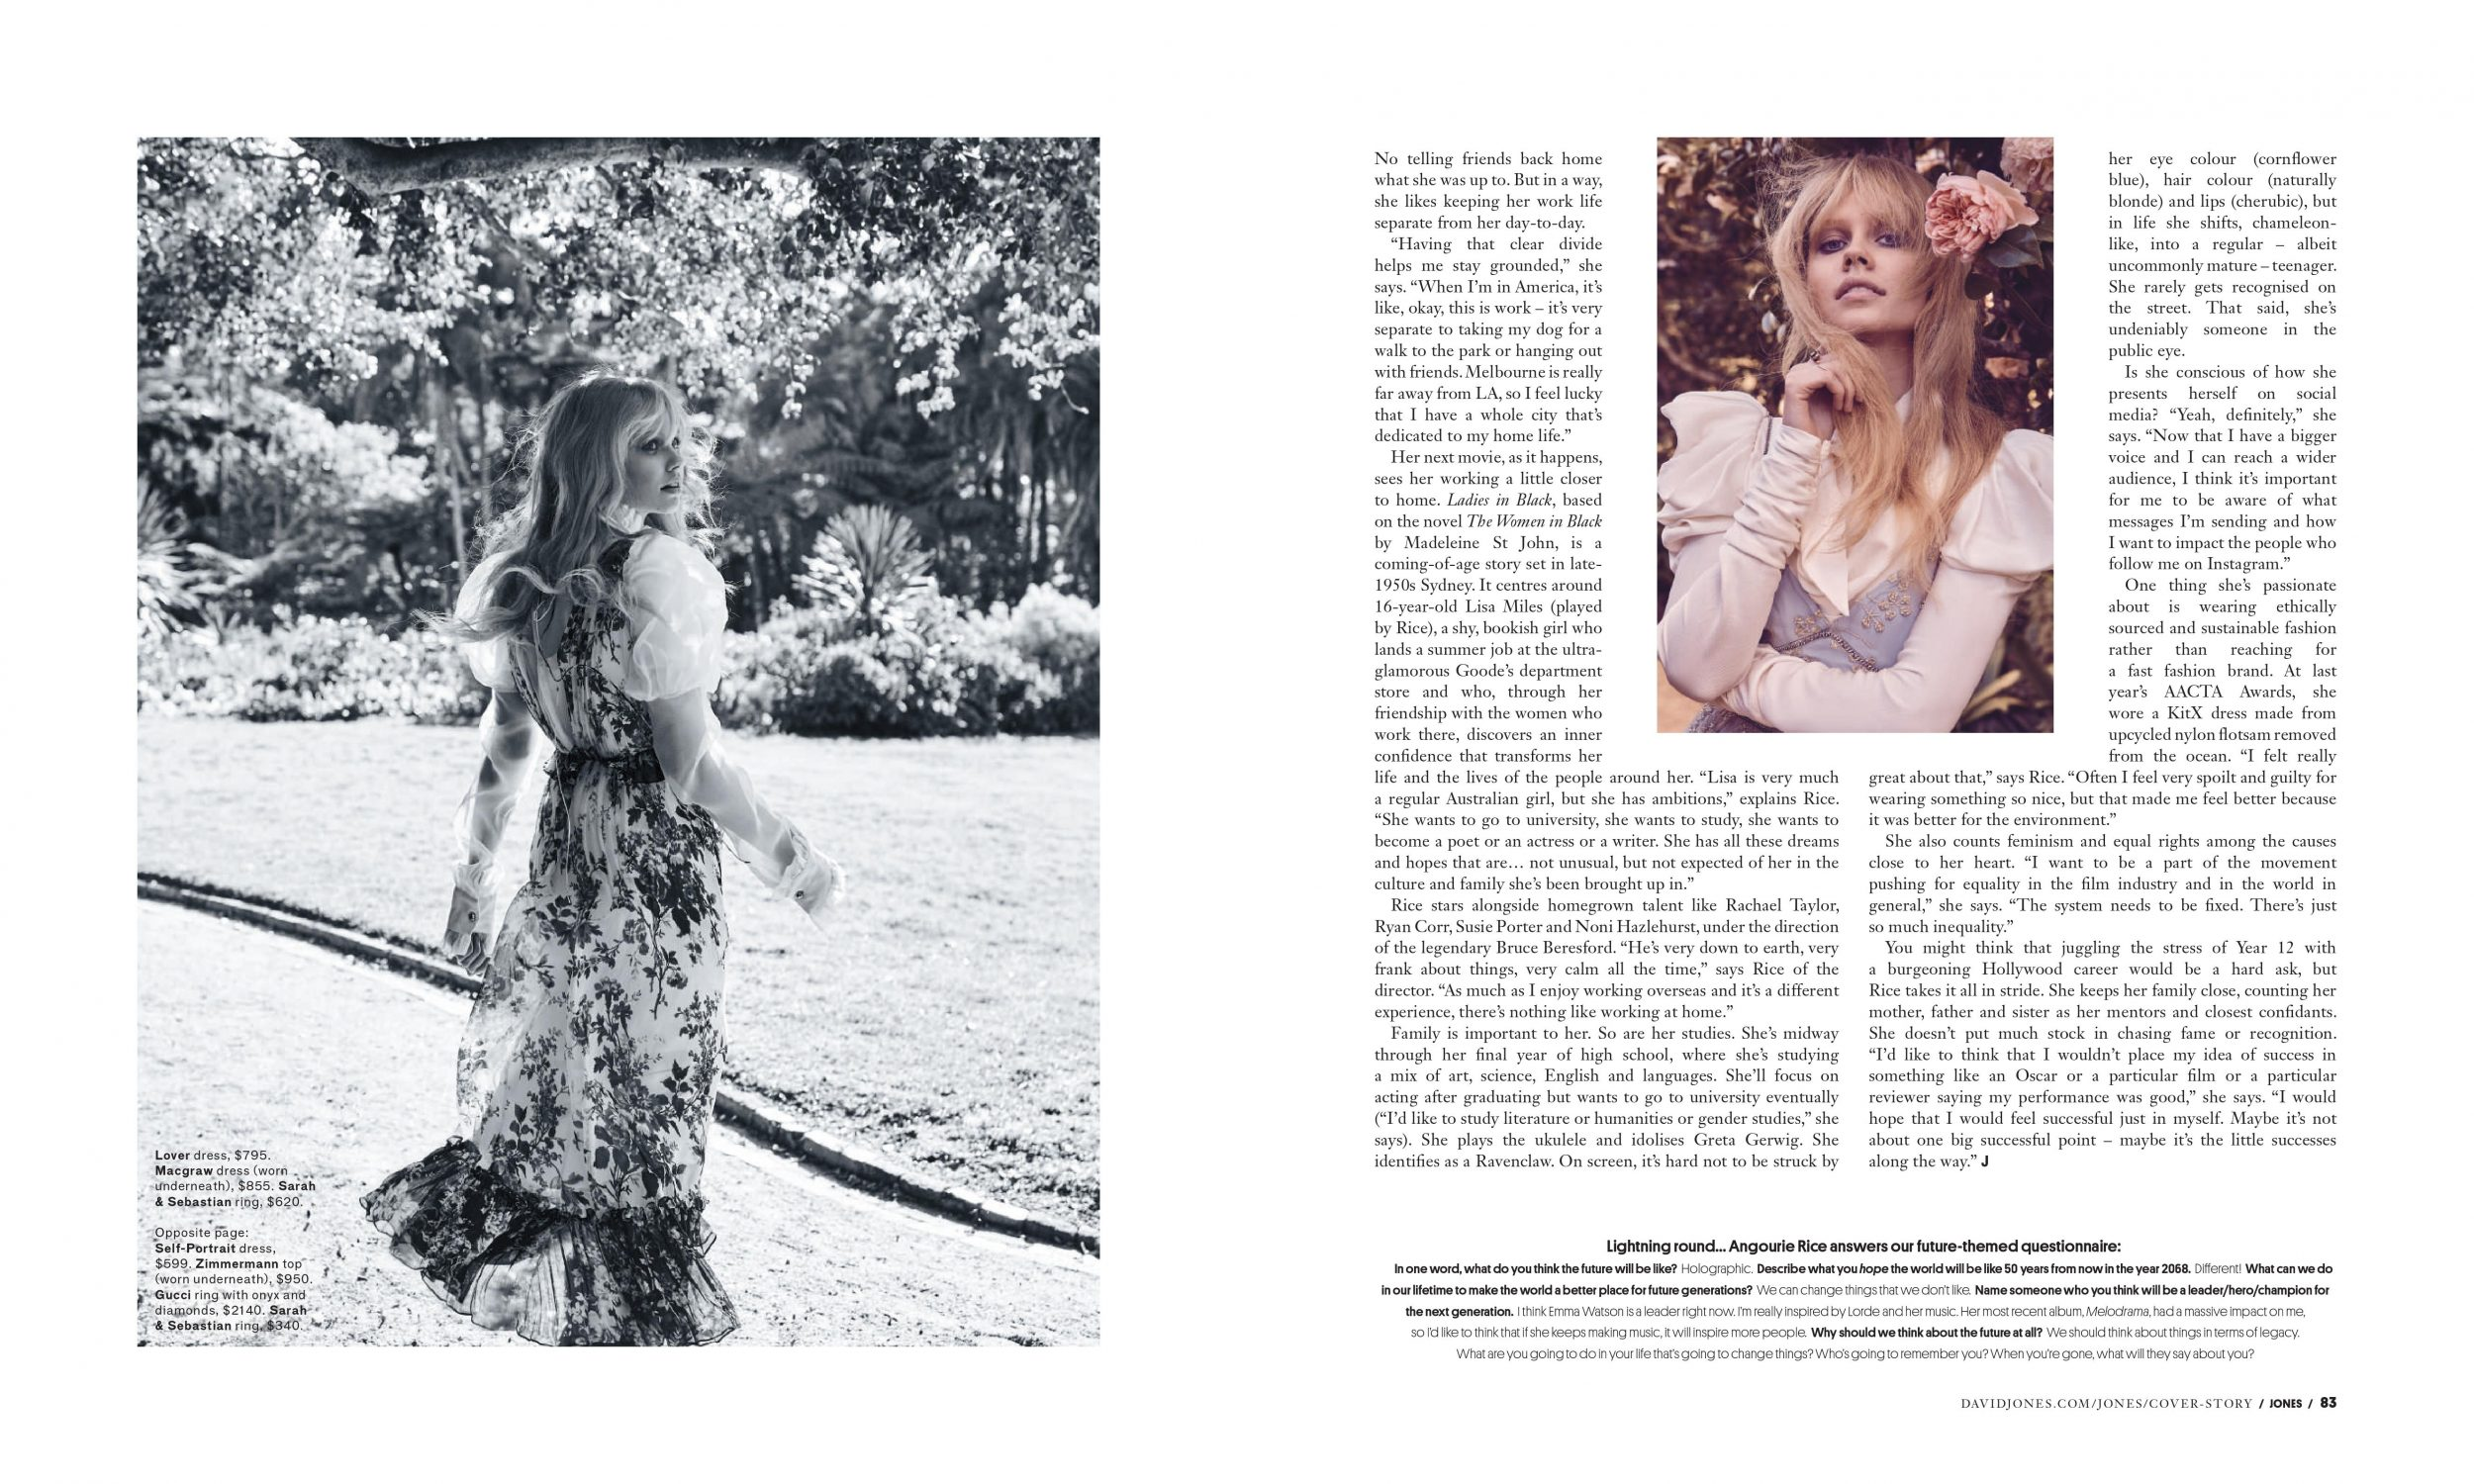 JONES magazine — Angourie Rice 2018 interview by Nadia Bailey